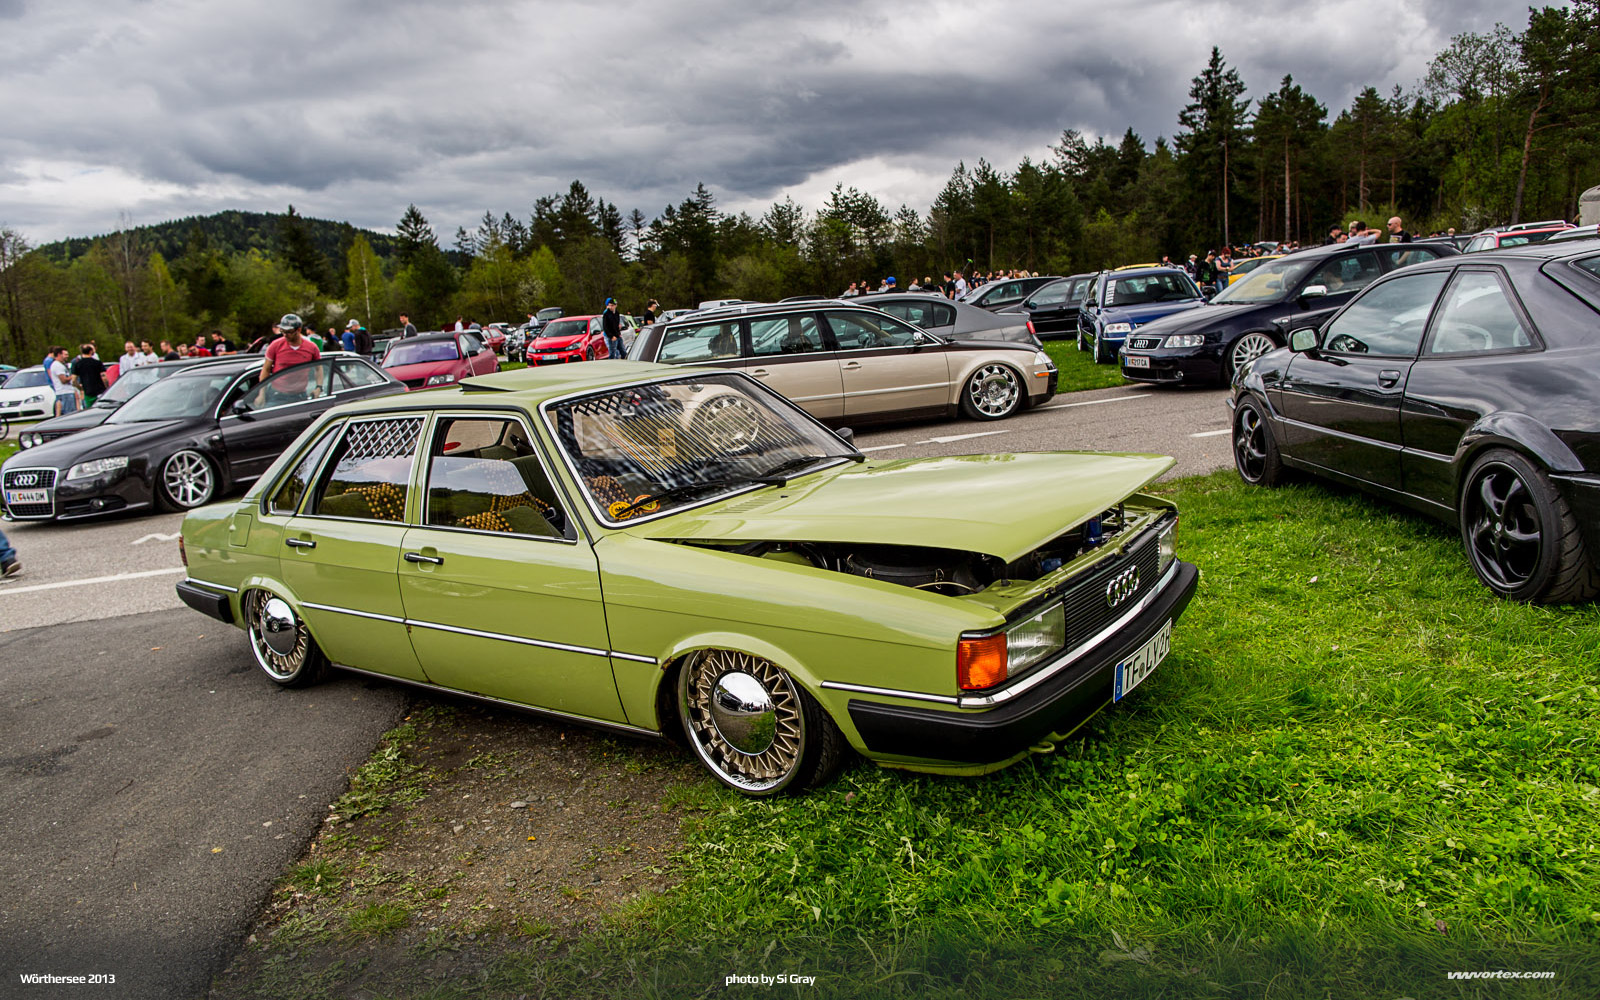 worthersee-2013-gallery-si-gray-031